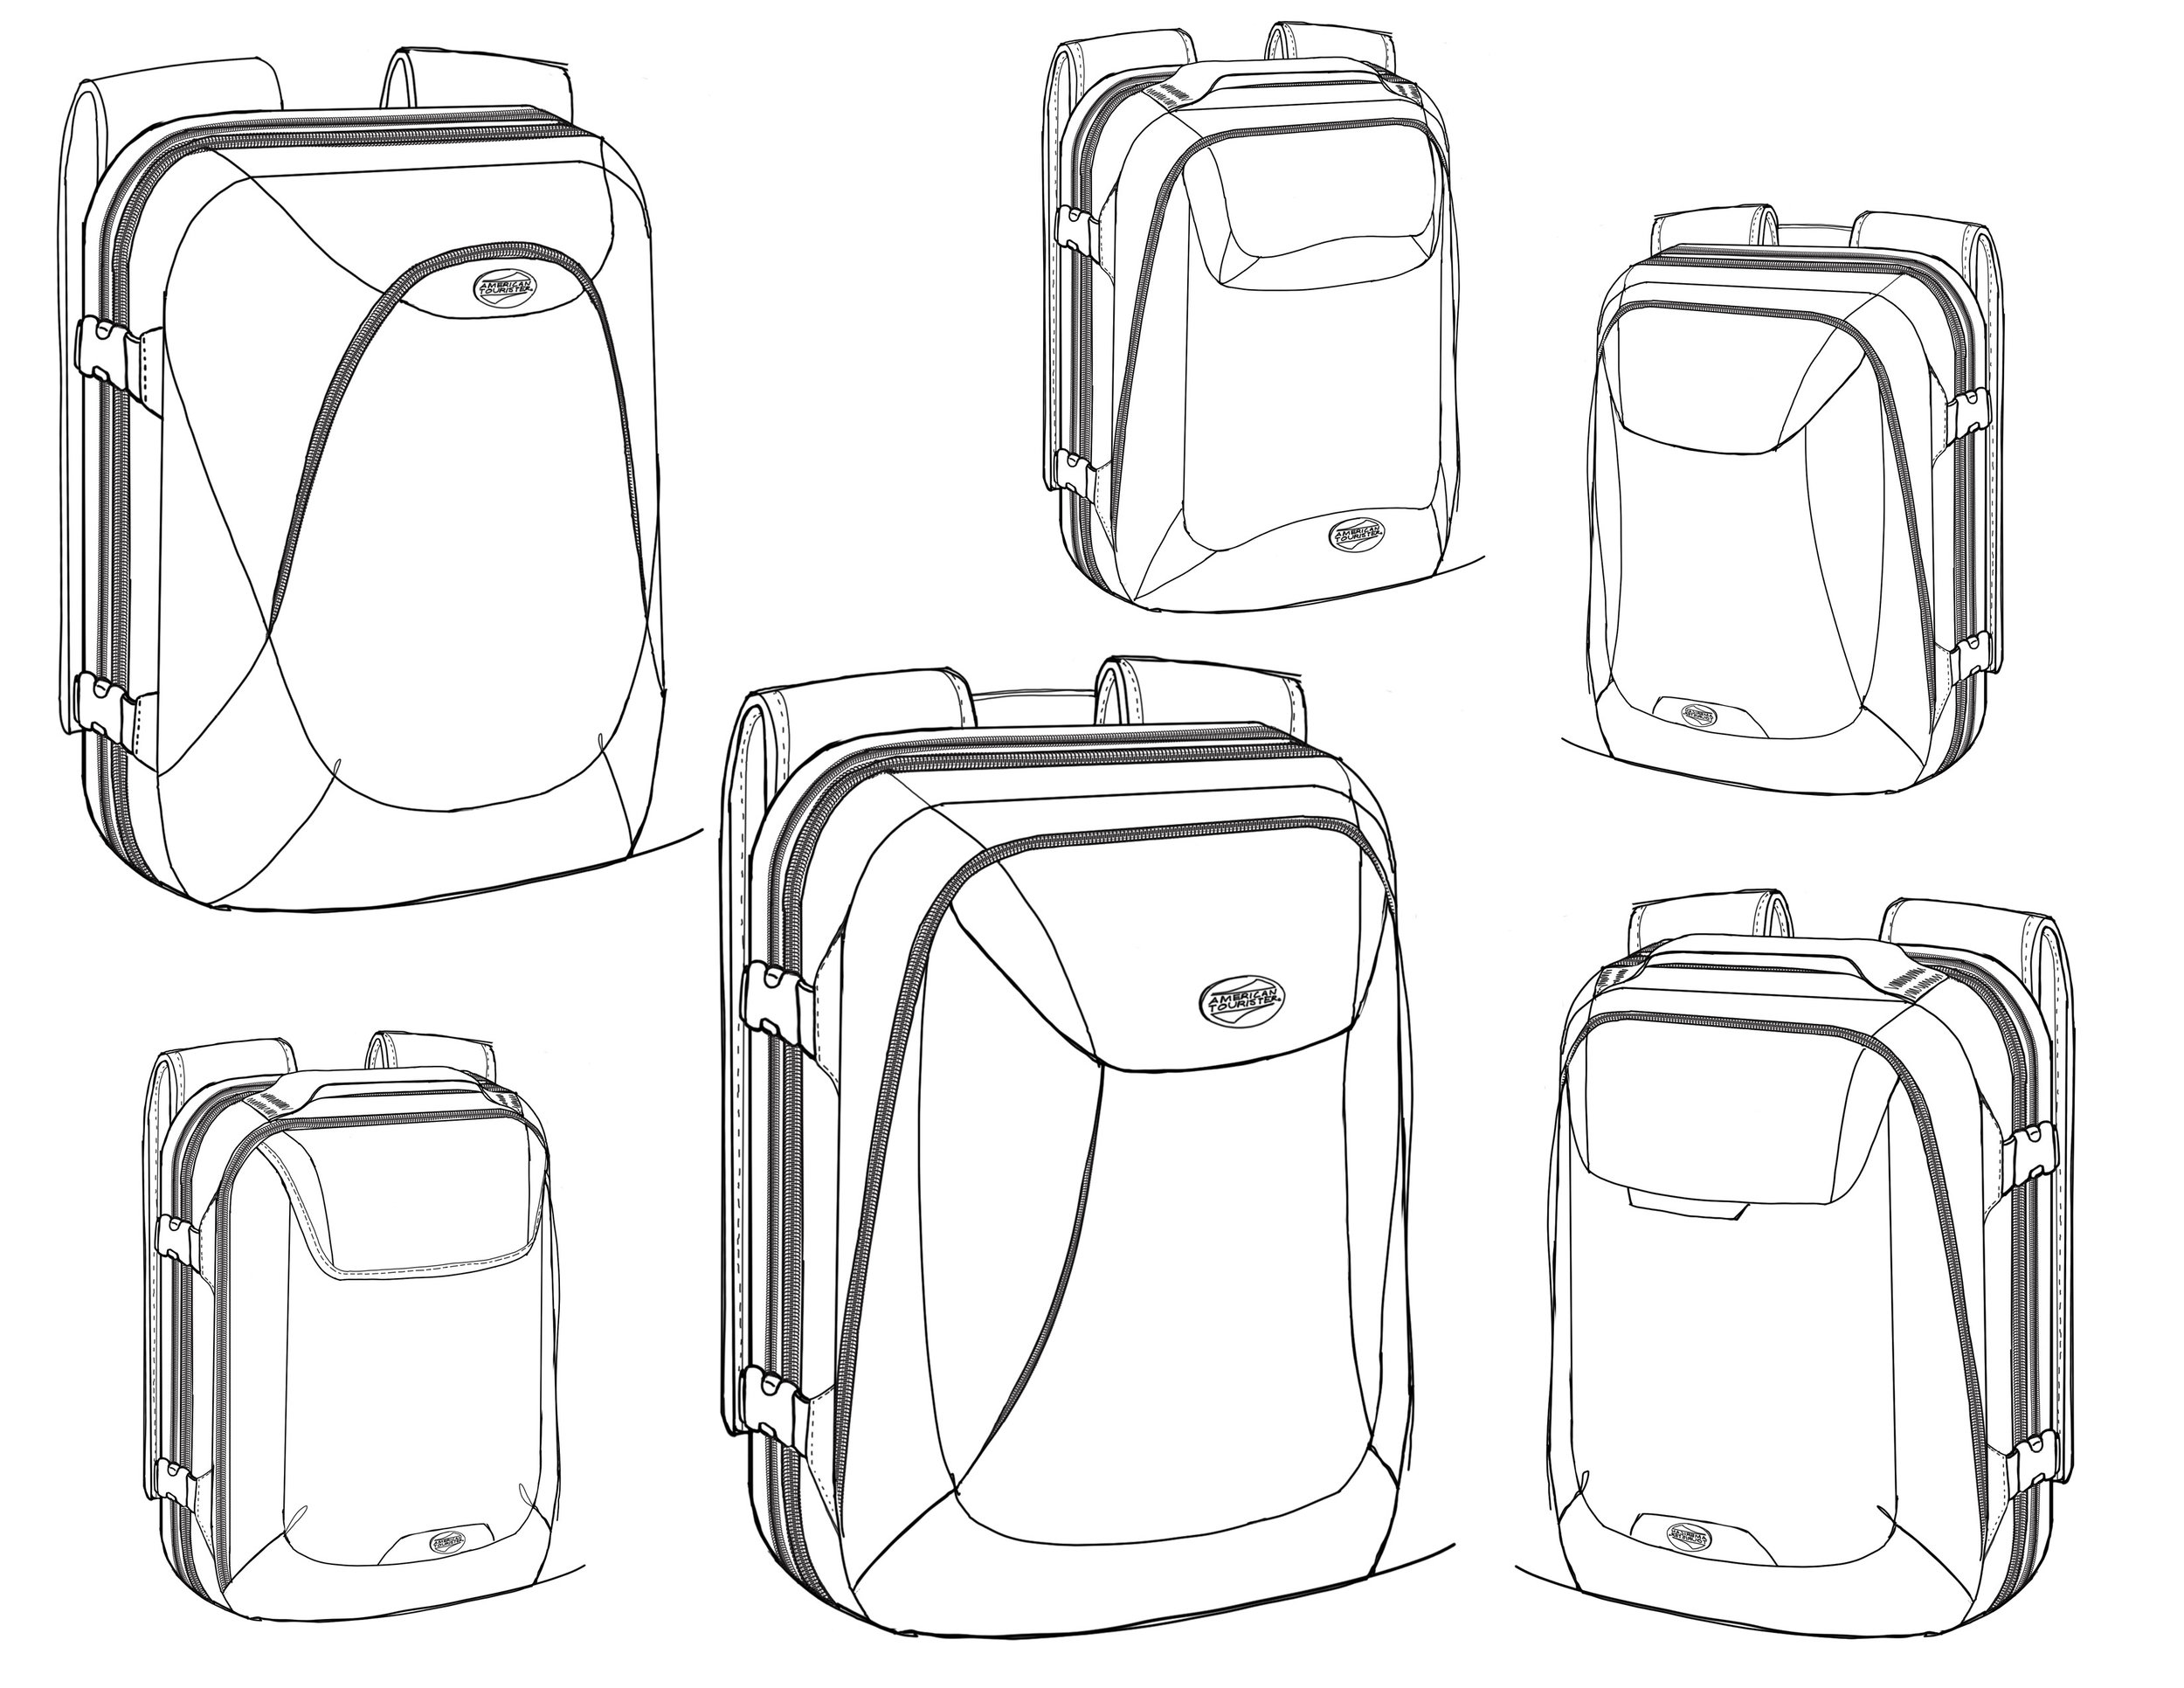 Initial sketches include the expandable gusset feature and hidden front pocket.